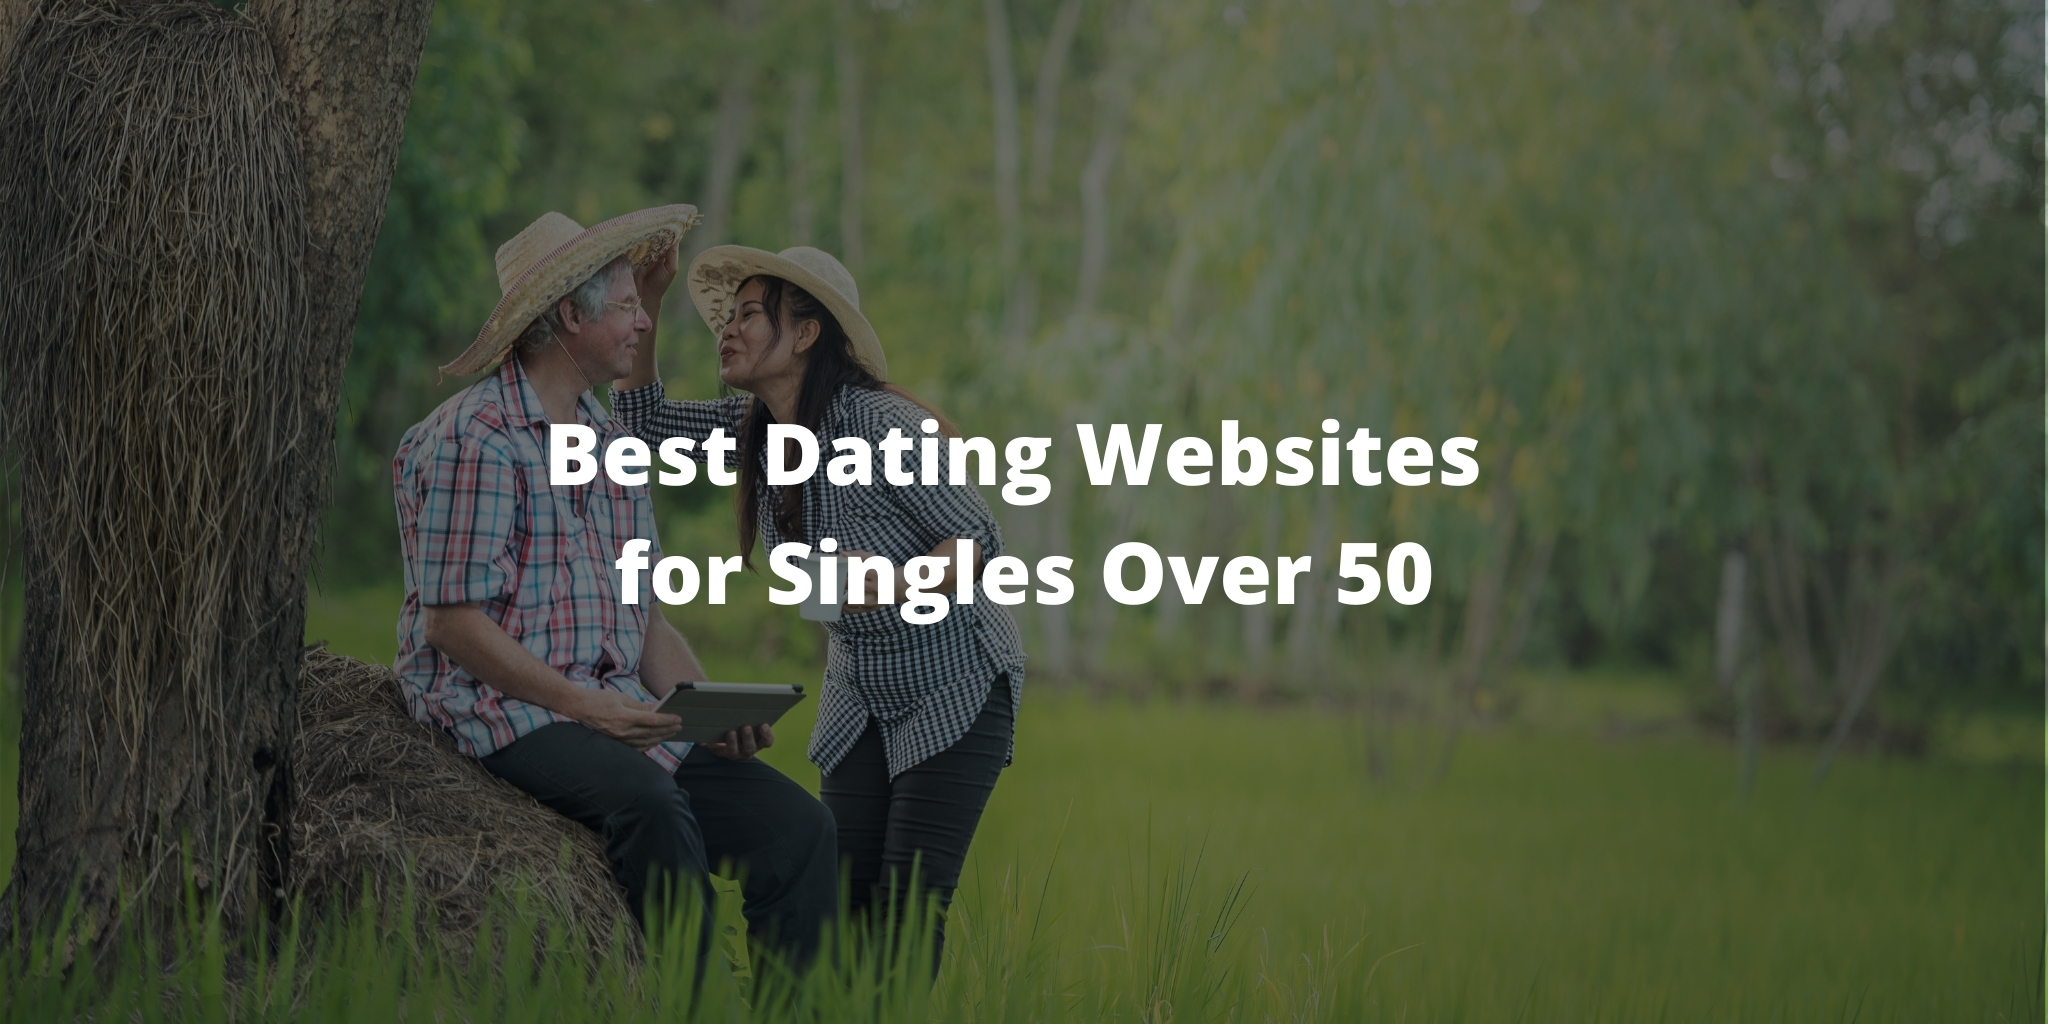 Best Dating Websites for Singles Over 50